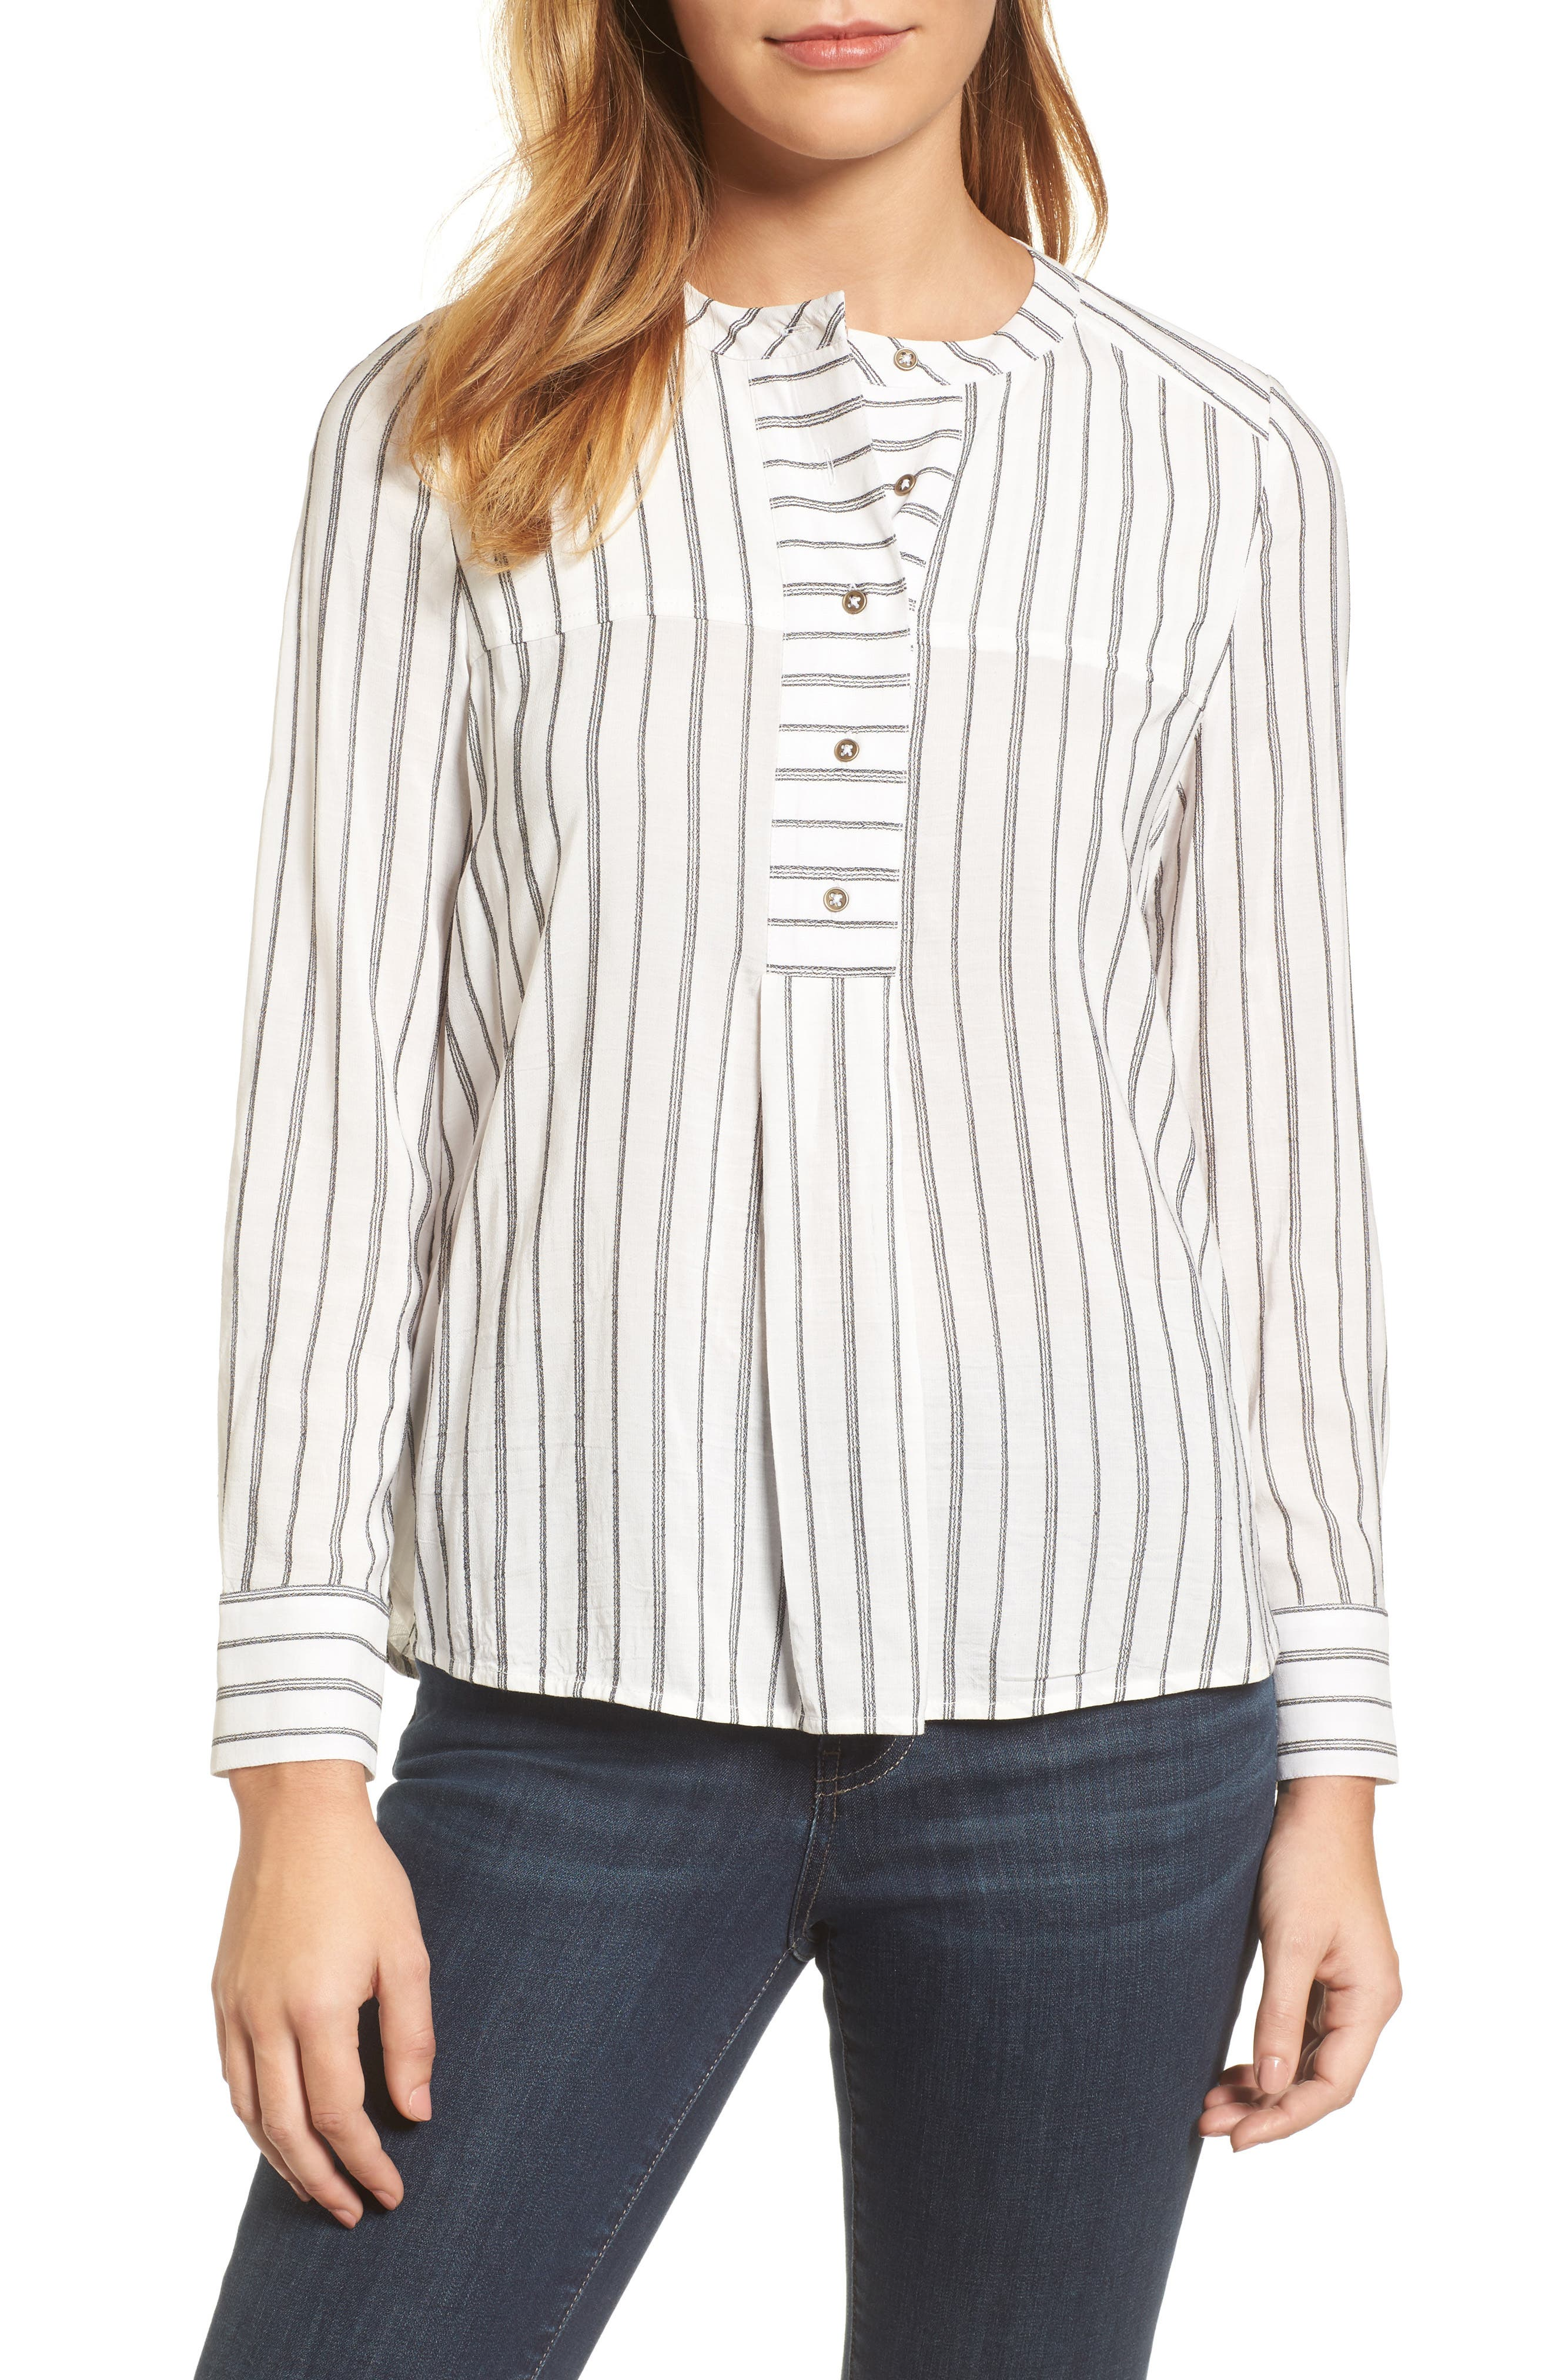 Alternate Image 1 Selected - Lucky Brand Woven Stripe Top